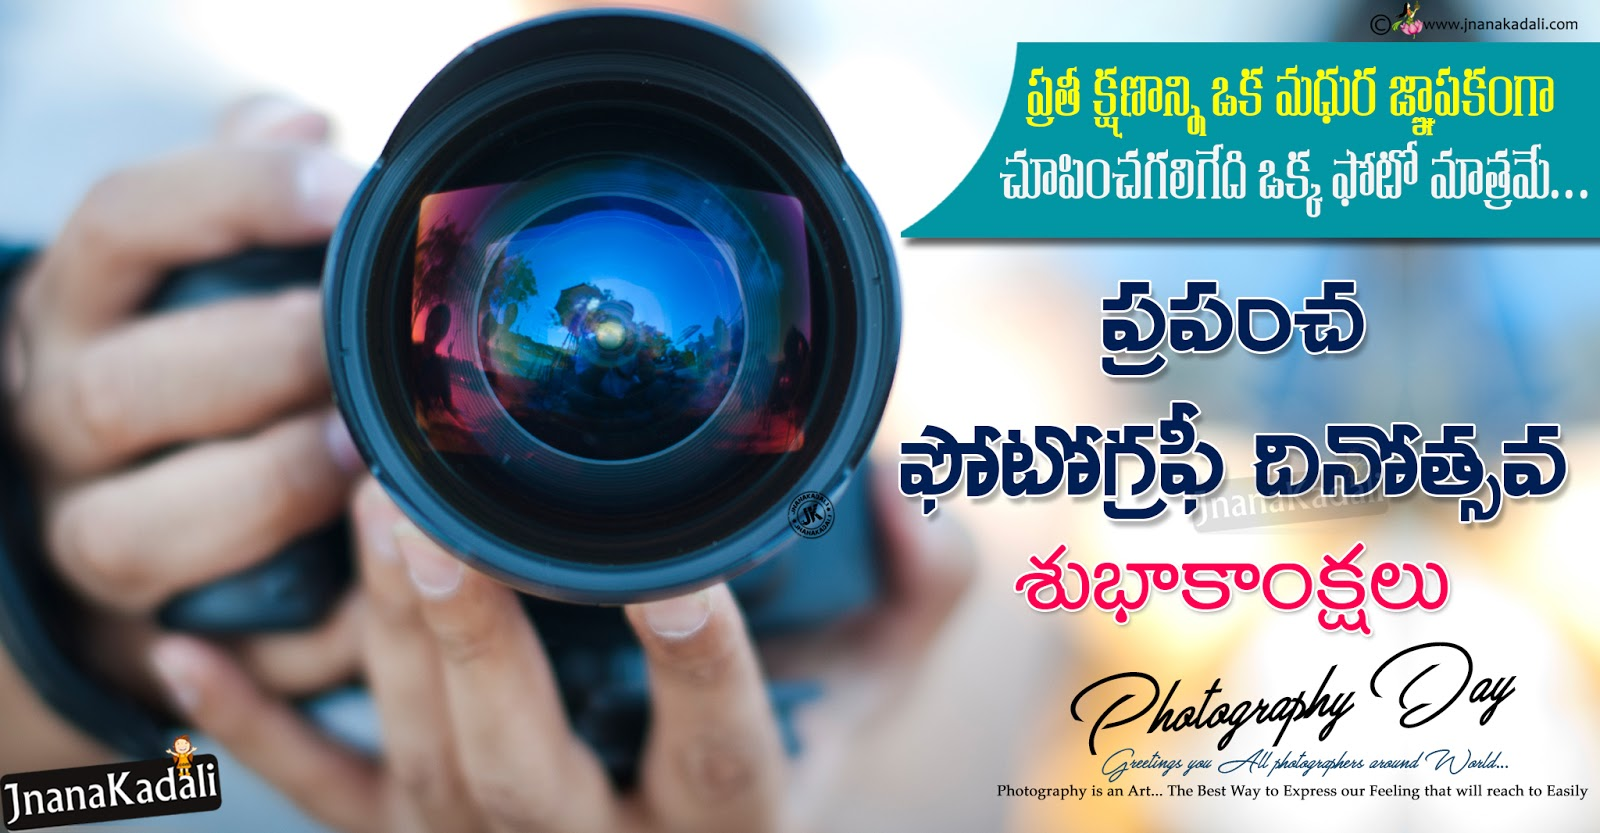 Latest Telugu Advanced International Photography Day Quotes Greetings With Hd Wallpapers Free Download Jnana Kadali Com Telugu Quotes English Quotes Hindi Quotes Tamil Quotes Dharmasandehalu